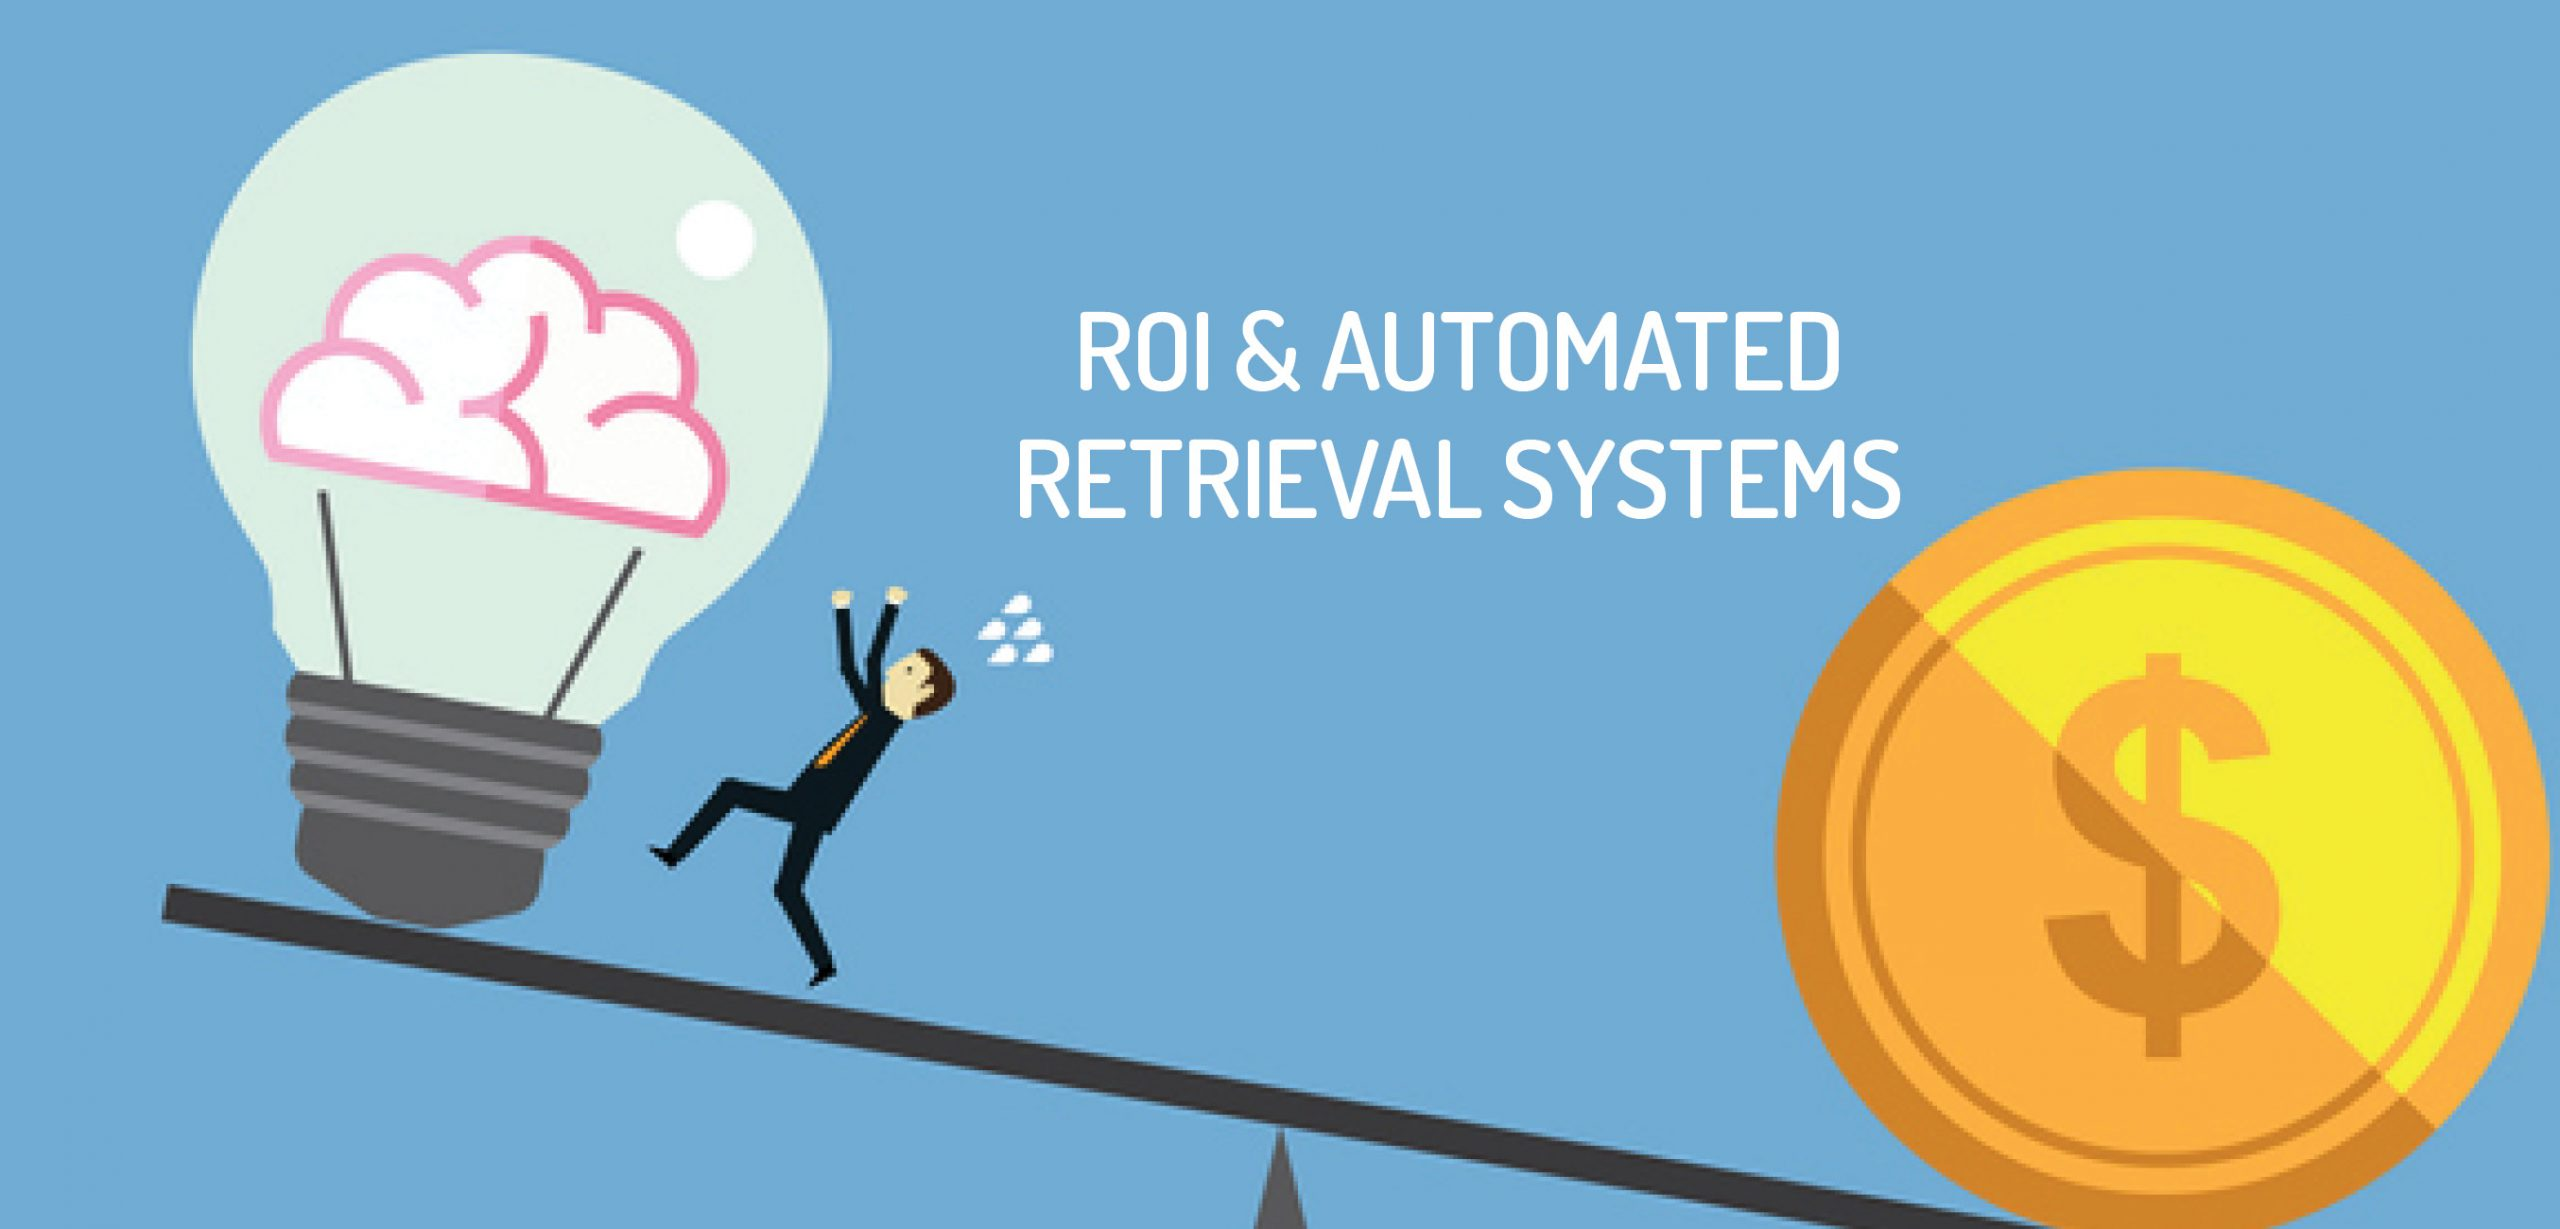 Advantages of Automated Storage Retrieval Systems